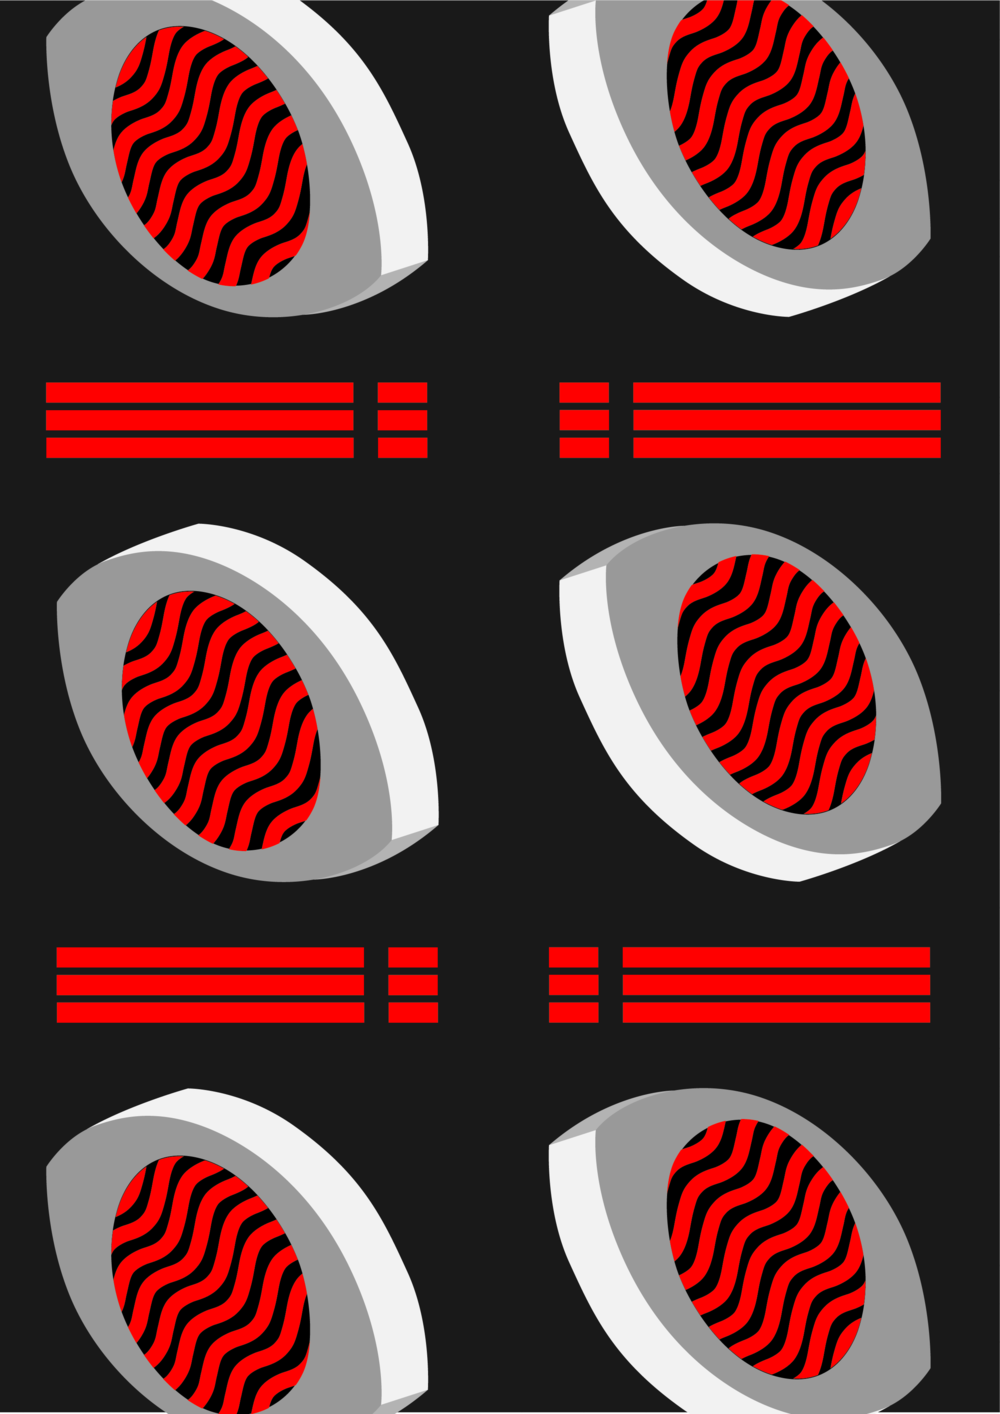 eye patterns-03.png